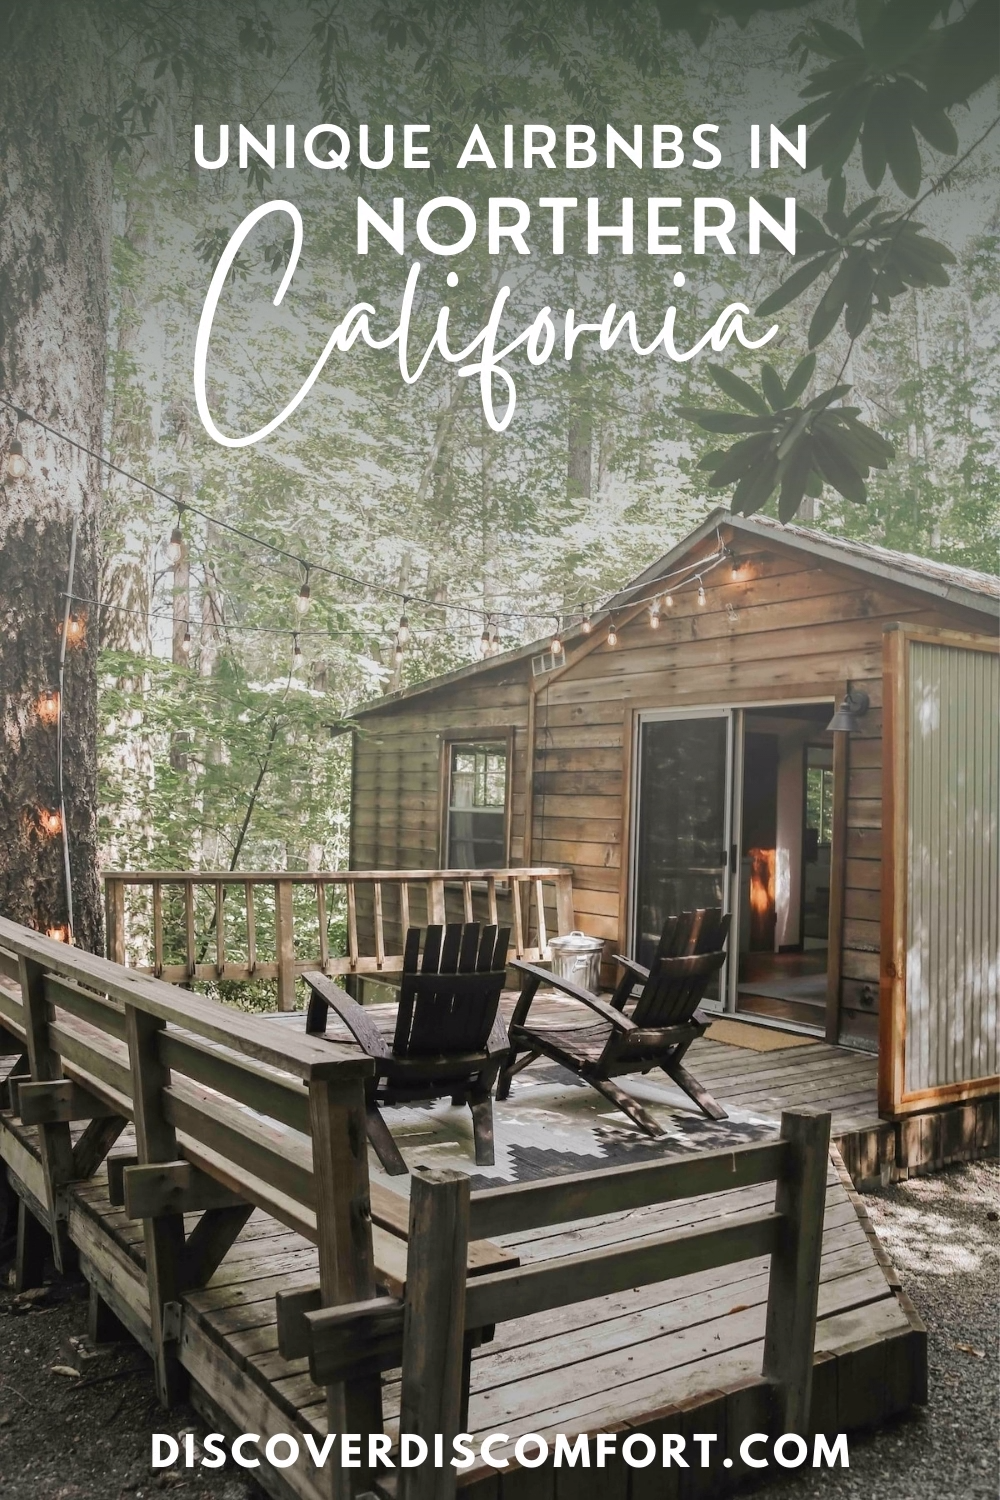 17 Most Unique Airbnbs in Northern California